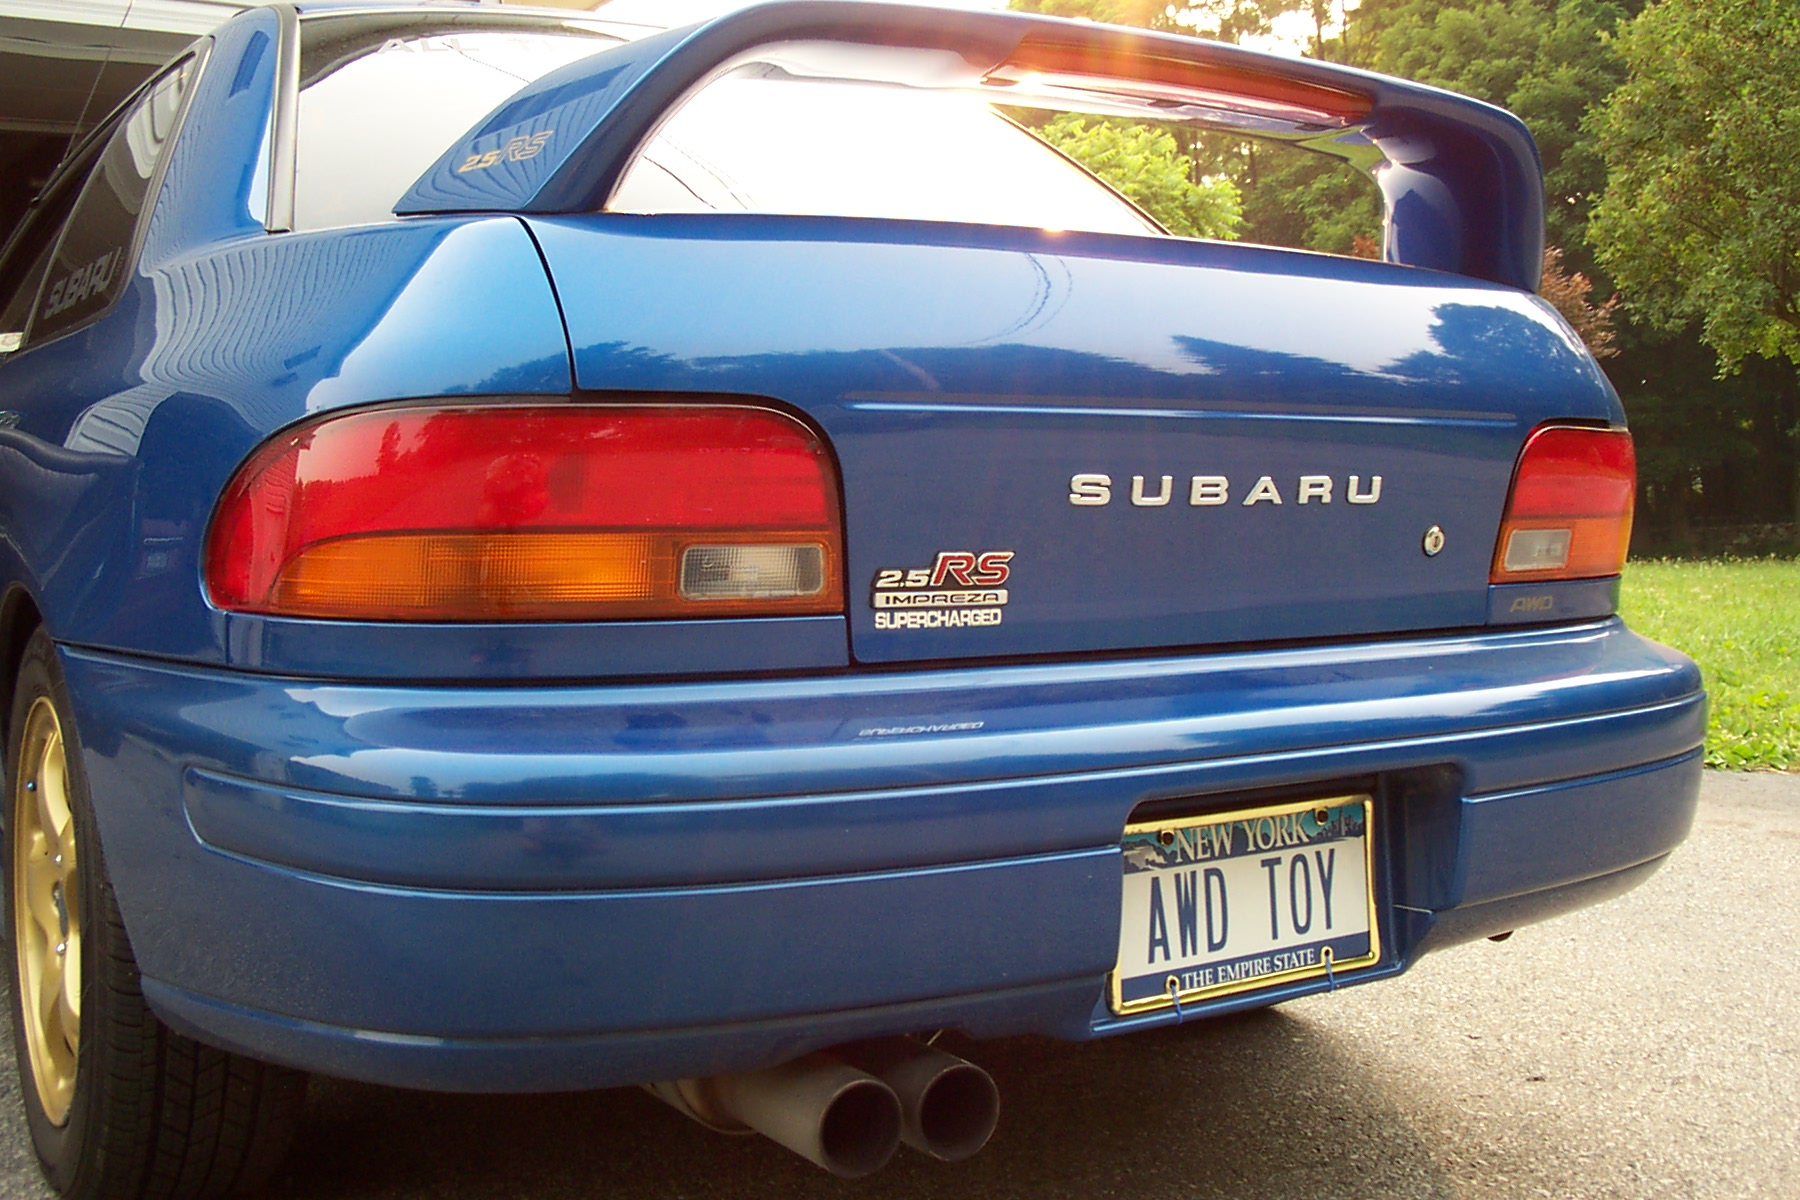 Compressed Air Car >> Subaru Impreza 2.5RS (1998) – Freelance Web Developer